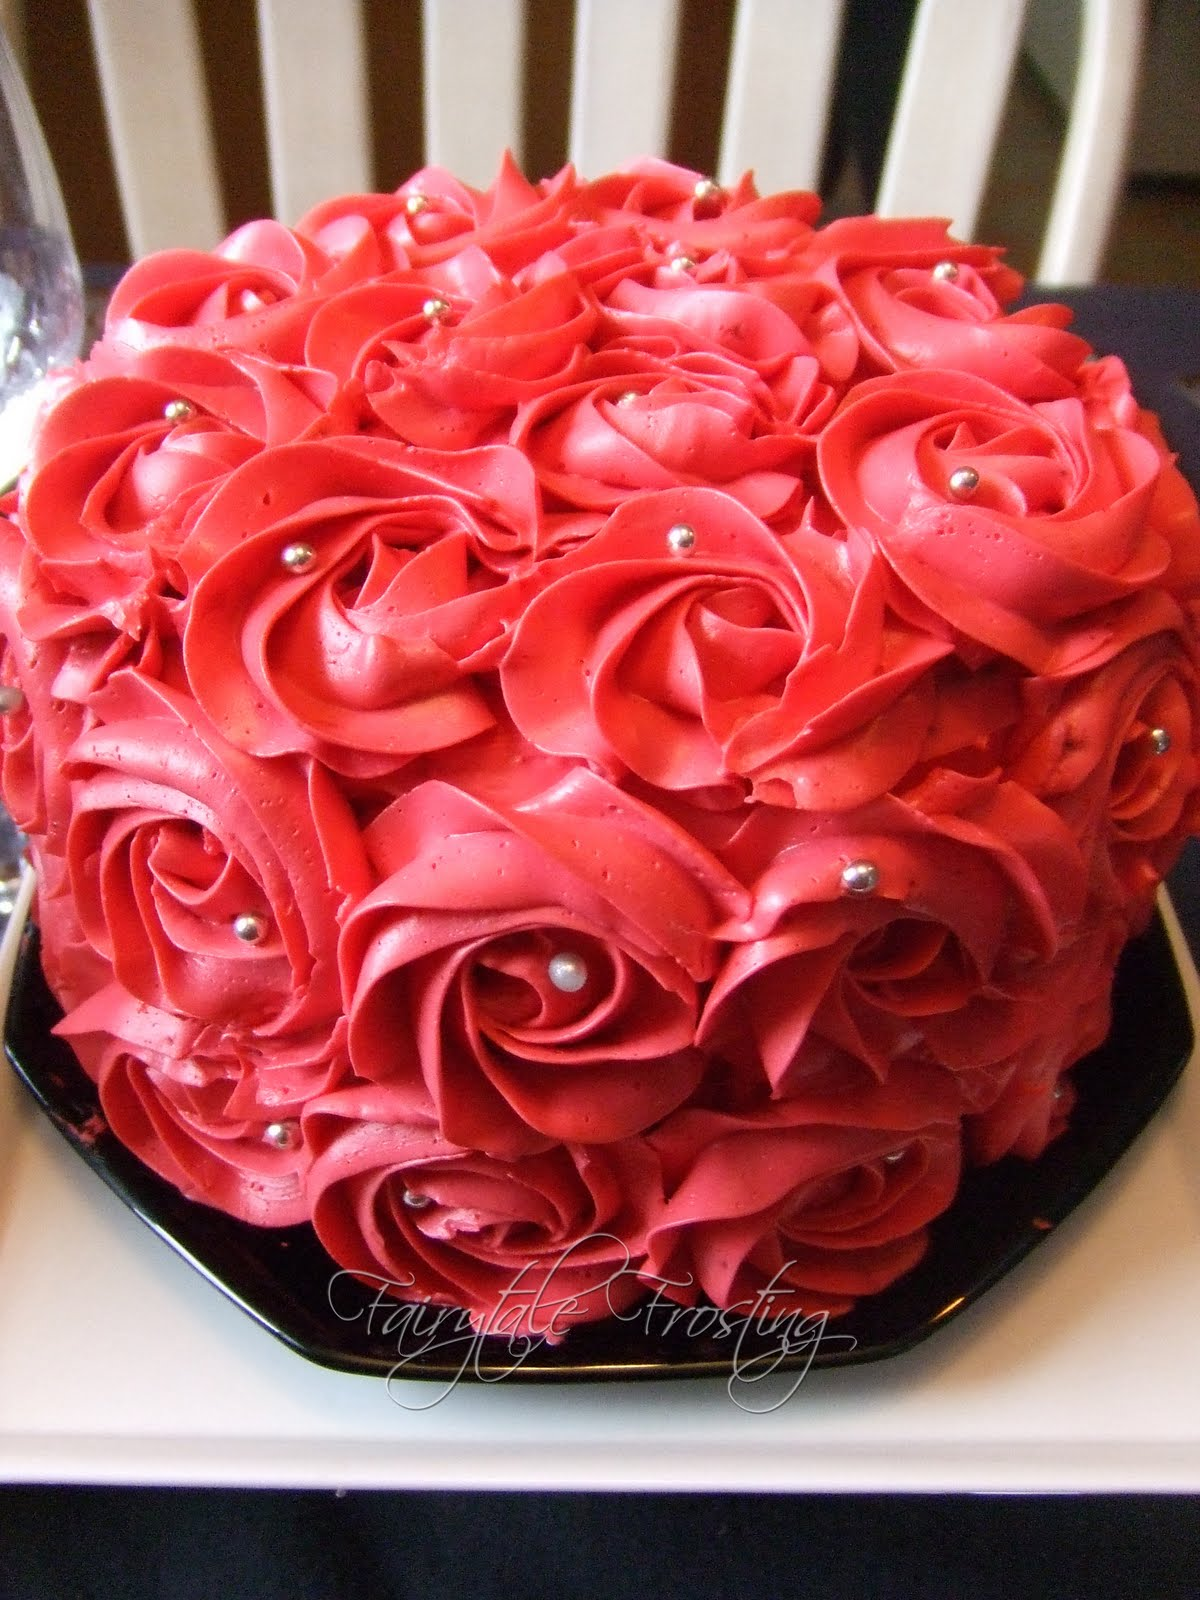 Images For Rose Cake : Fairytale Frosting: Our Valentine s Table